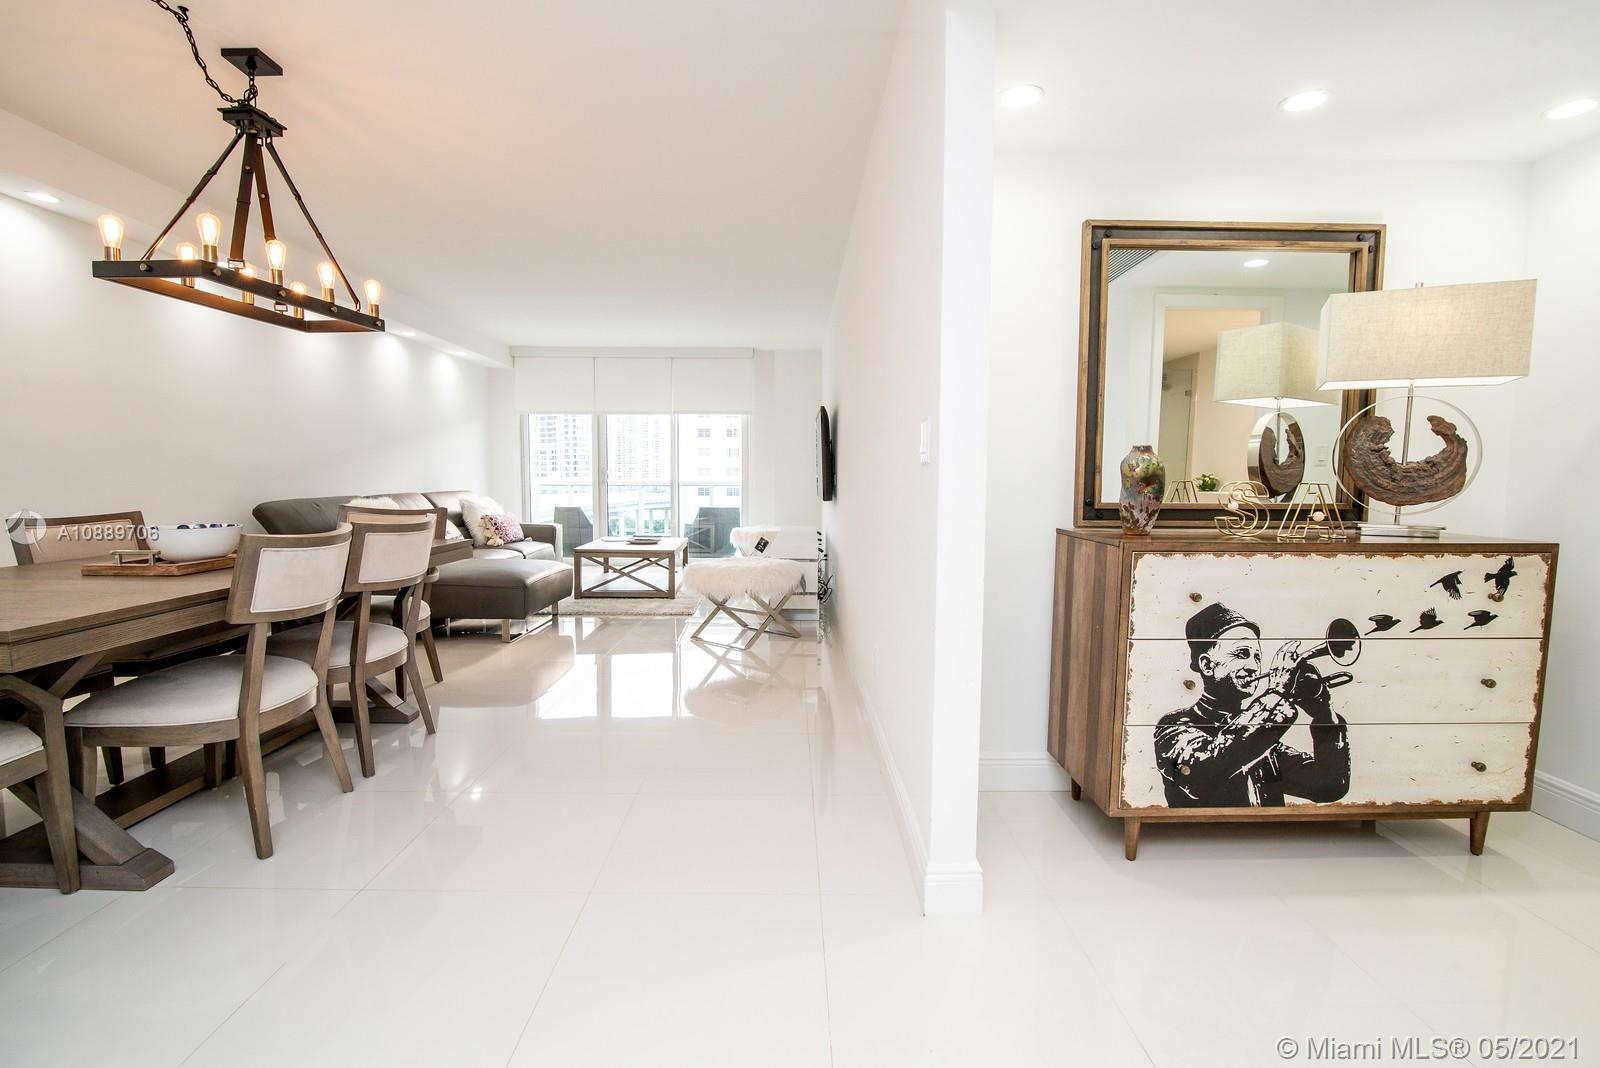 19380 Collins Ave #1003 Property Photo